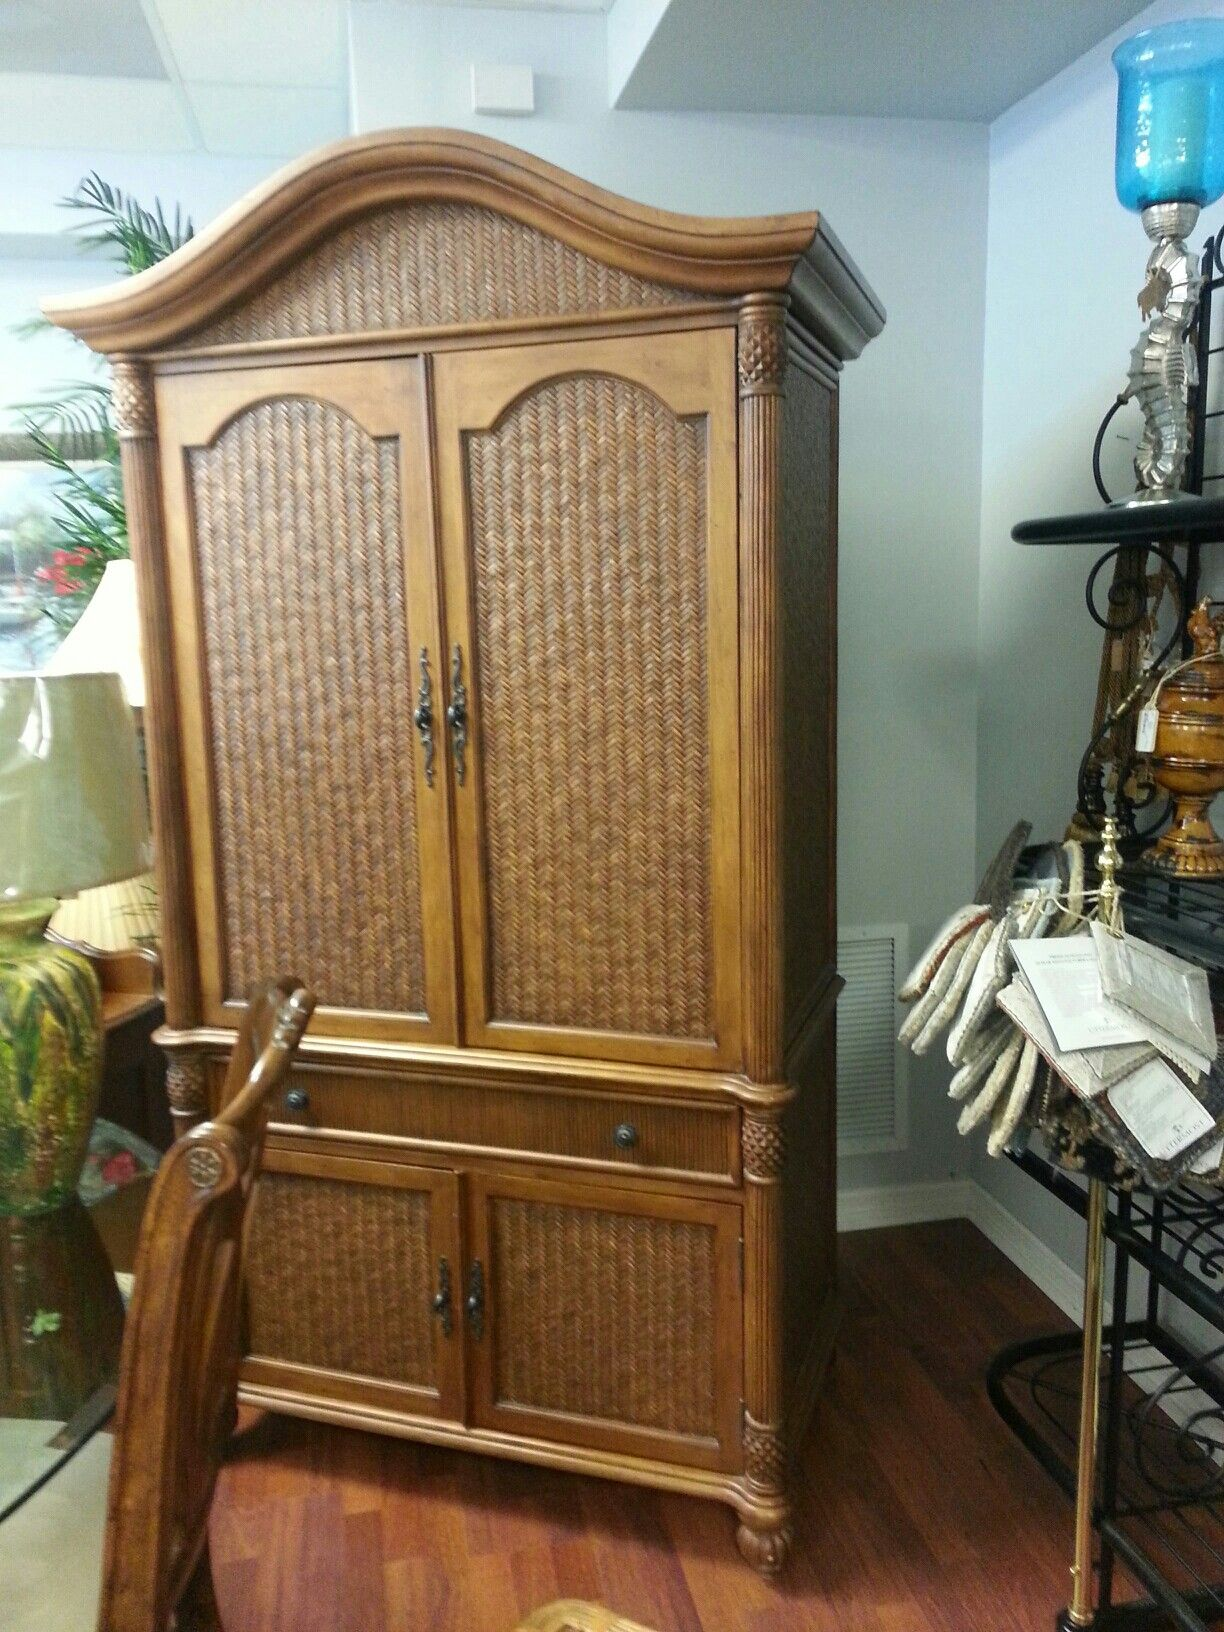 Gorgeous Rattan Armoire   Pelican Reef Makes Quality Furniture And We Have  The Armoire U0026 King